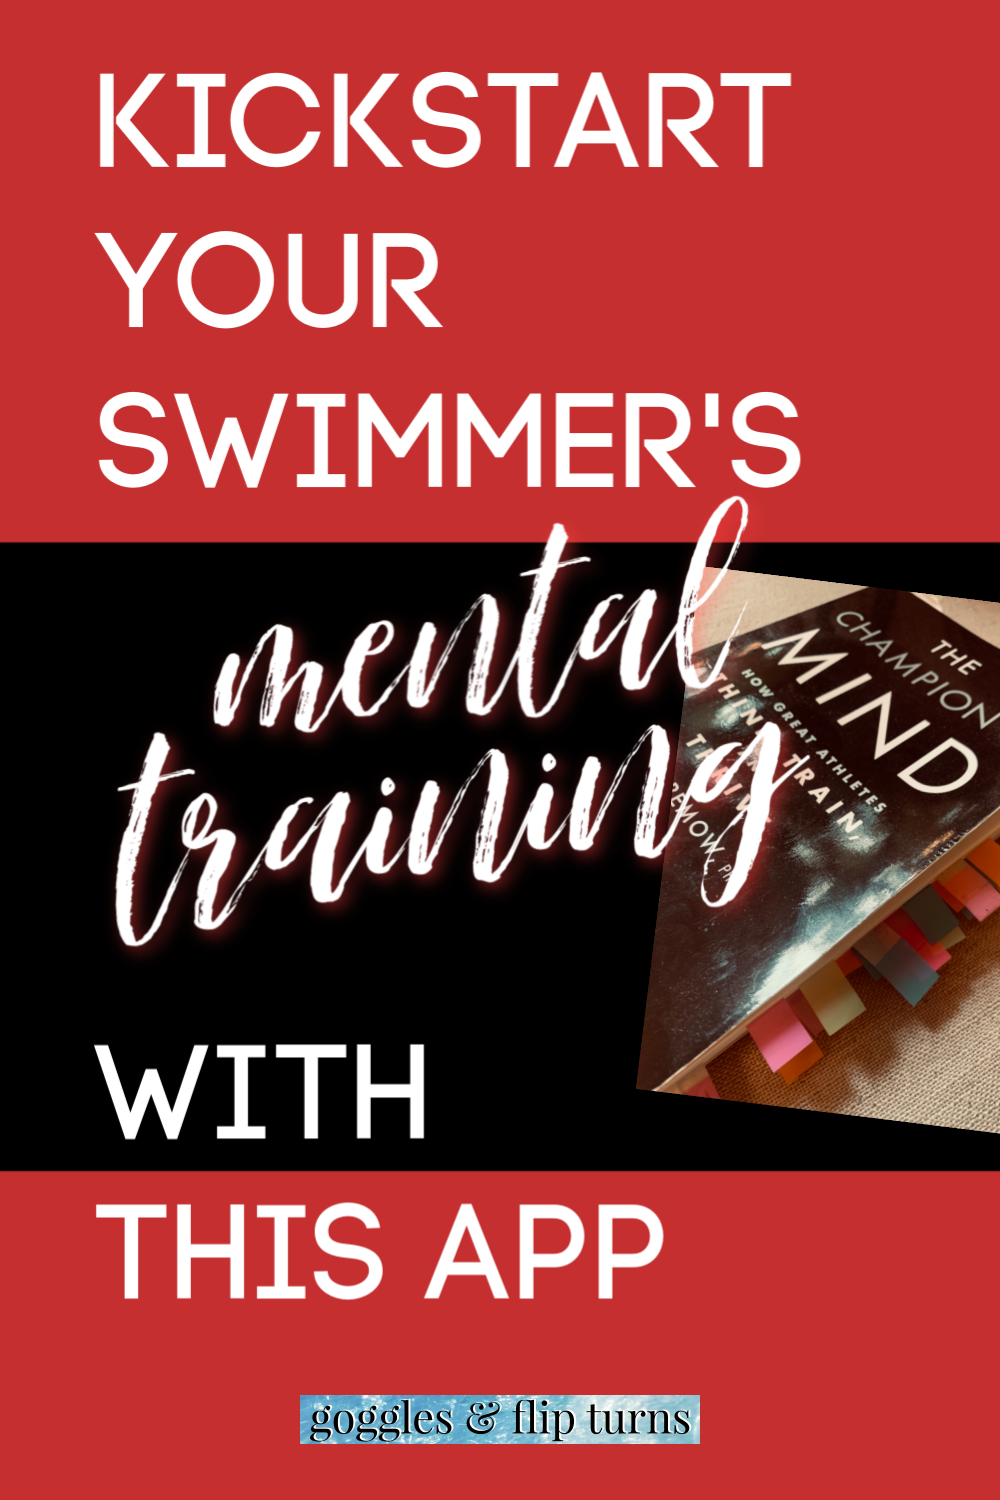 Kickstart swimmer's mental training with this app